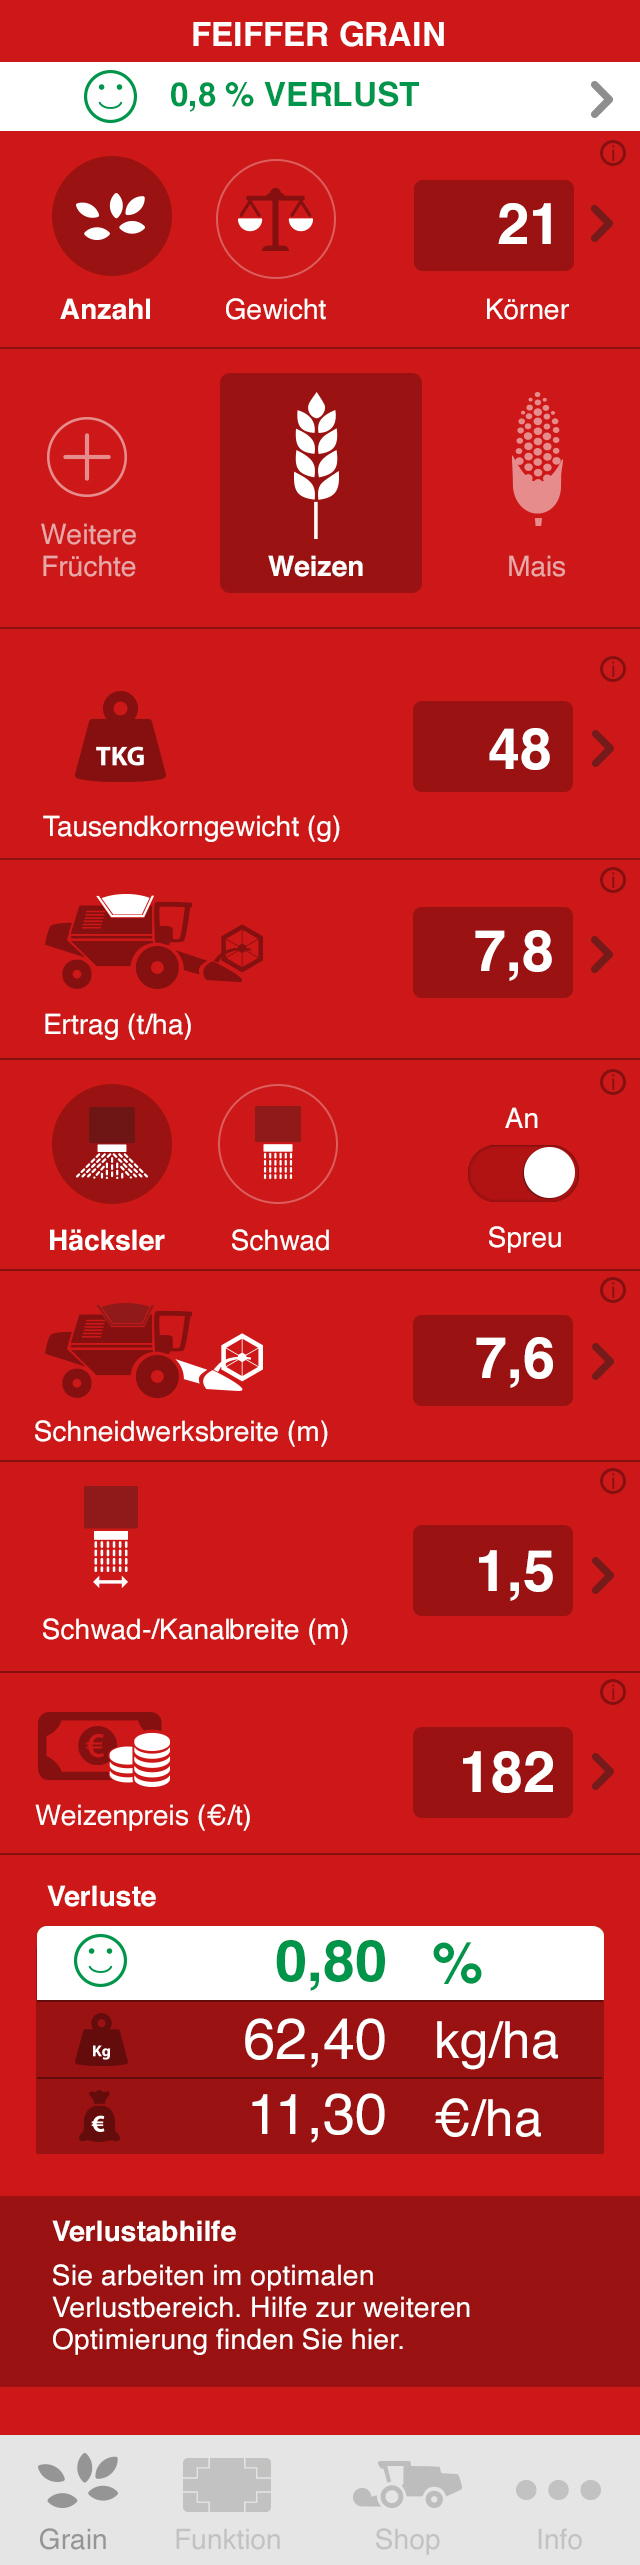 APP_Design_feiffer_grain_red_V03